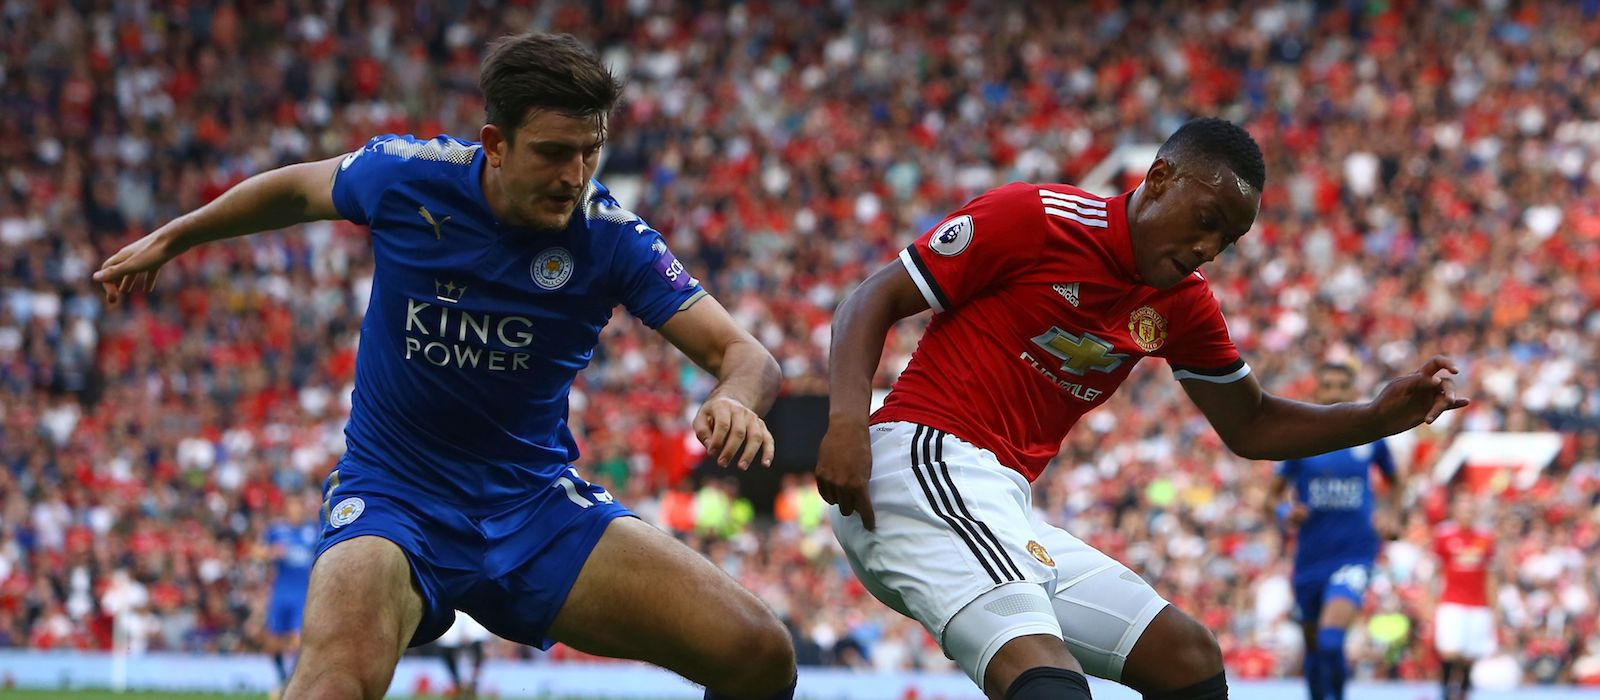 Report: Manchester United eyeing huge bid for England defender Harry Maguire